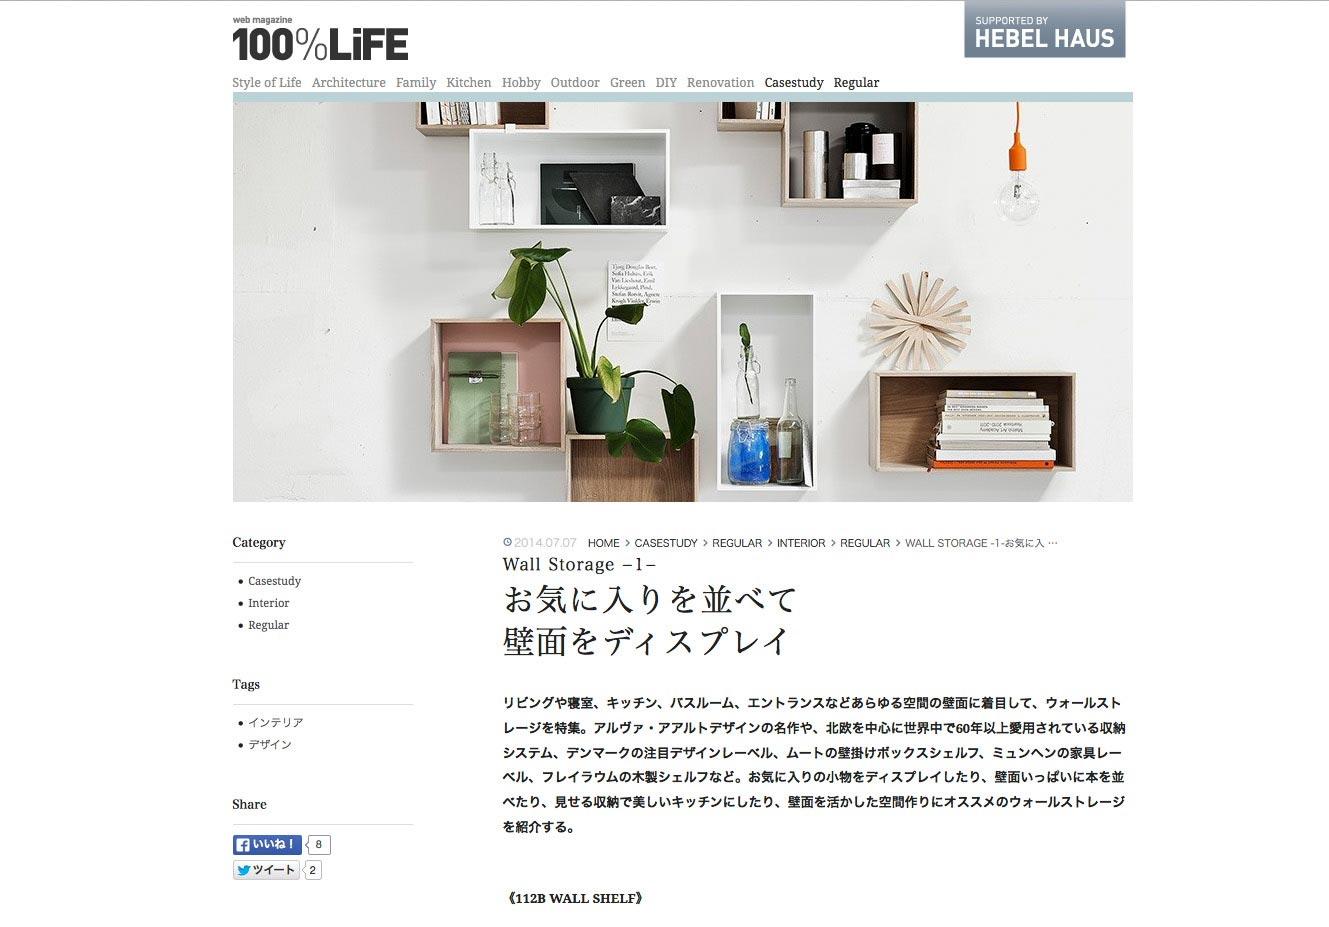 http://100life.jp/regular/interior/14448/